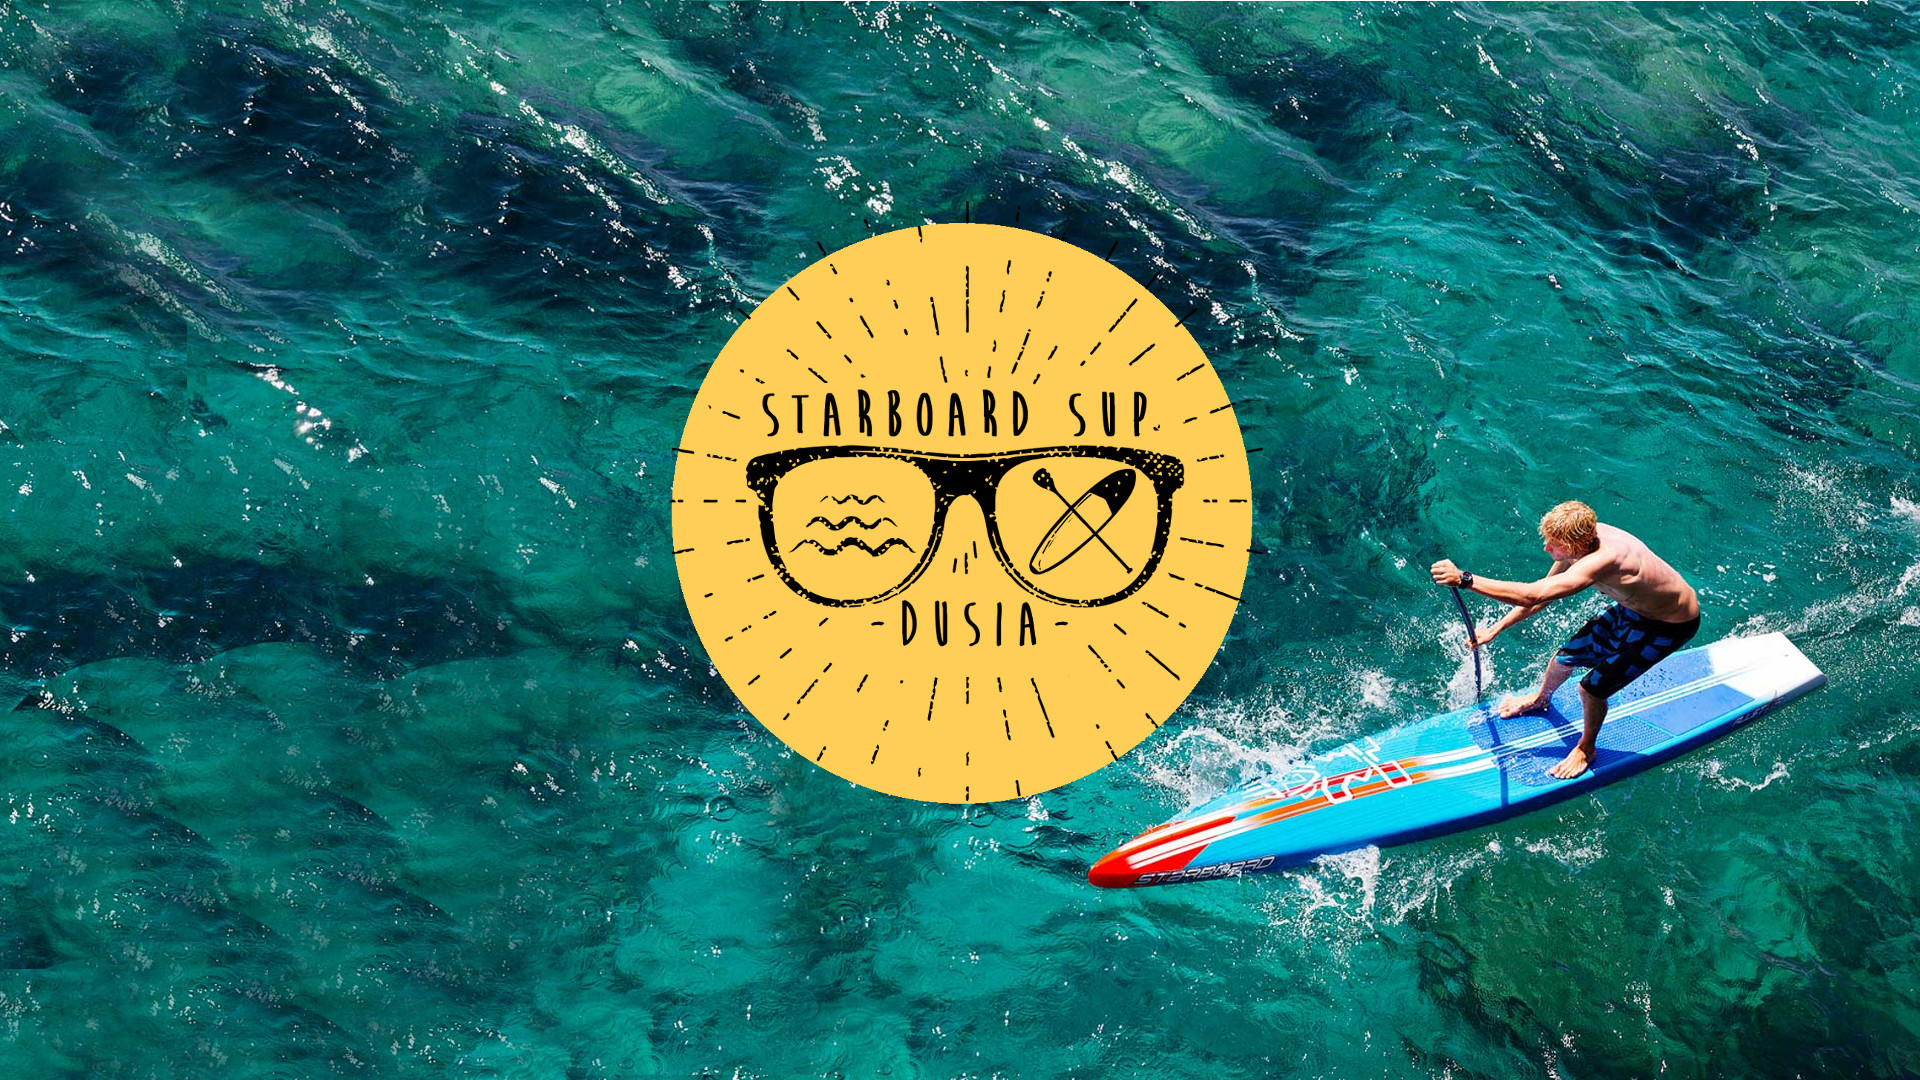 Starboard SUP Dusia 2016